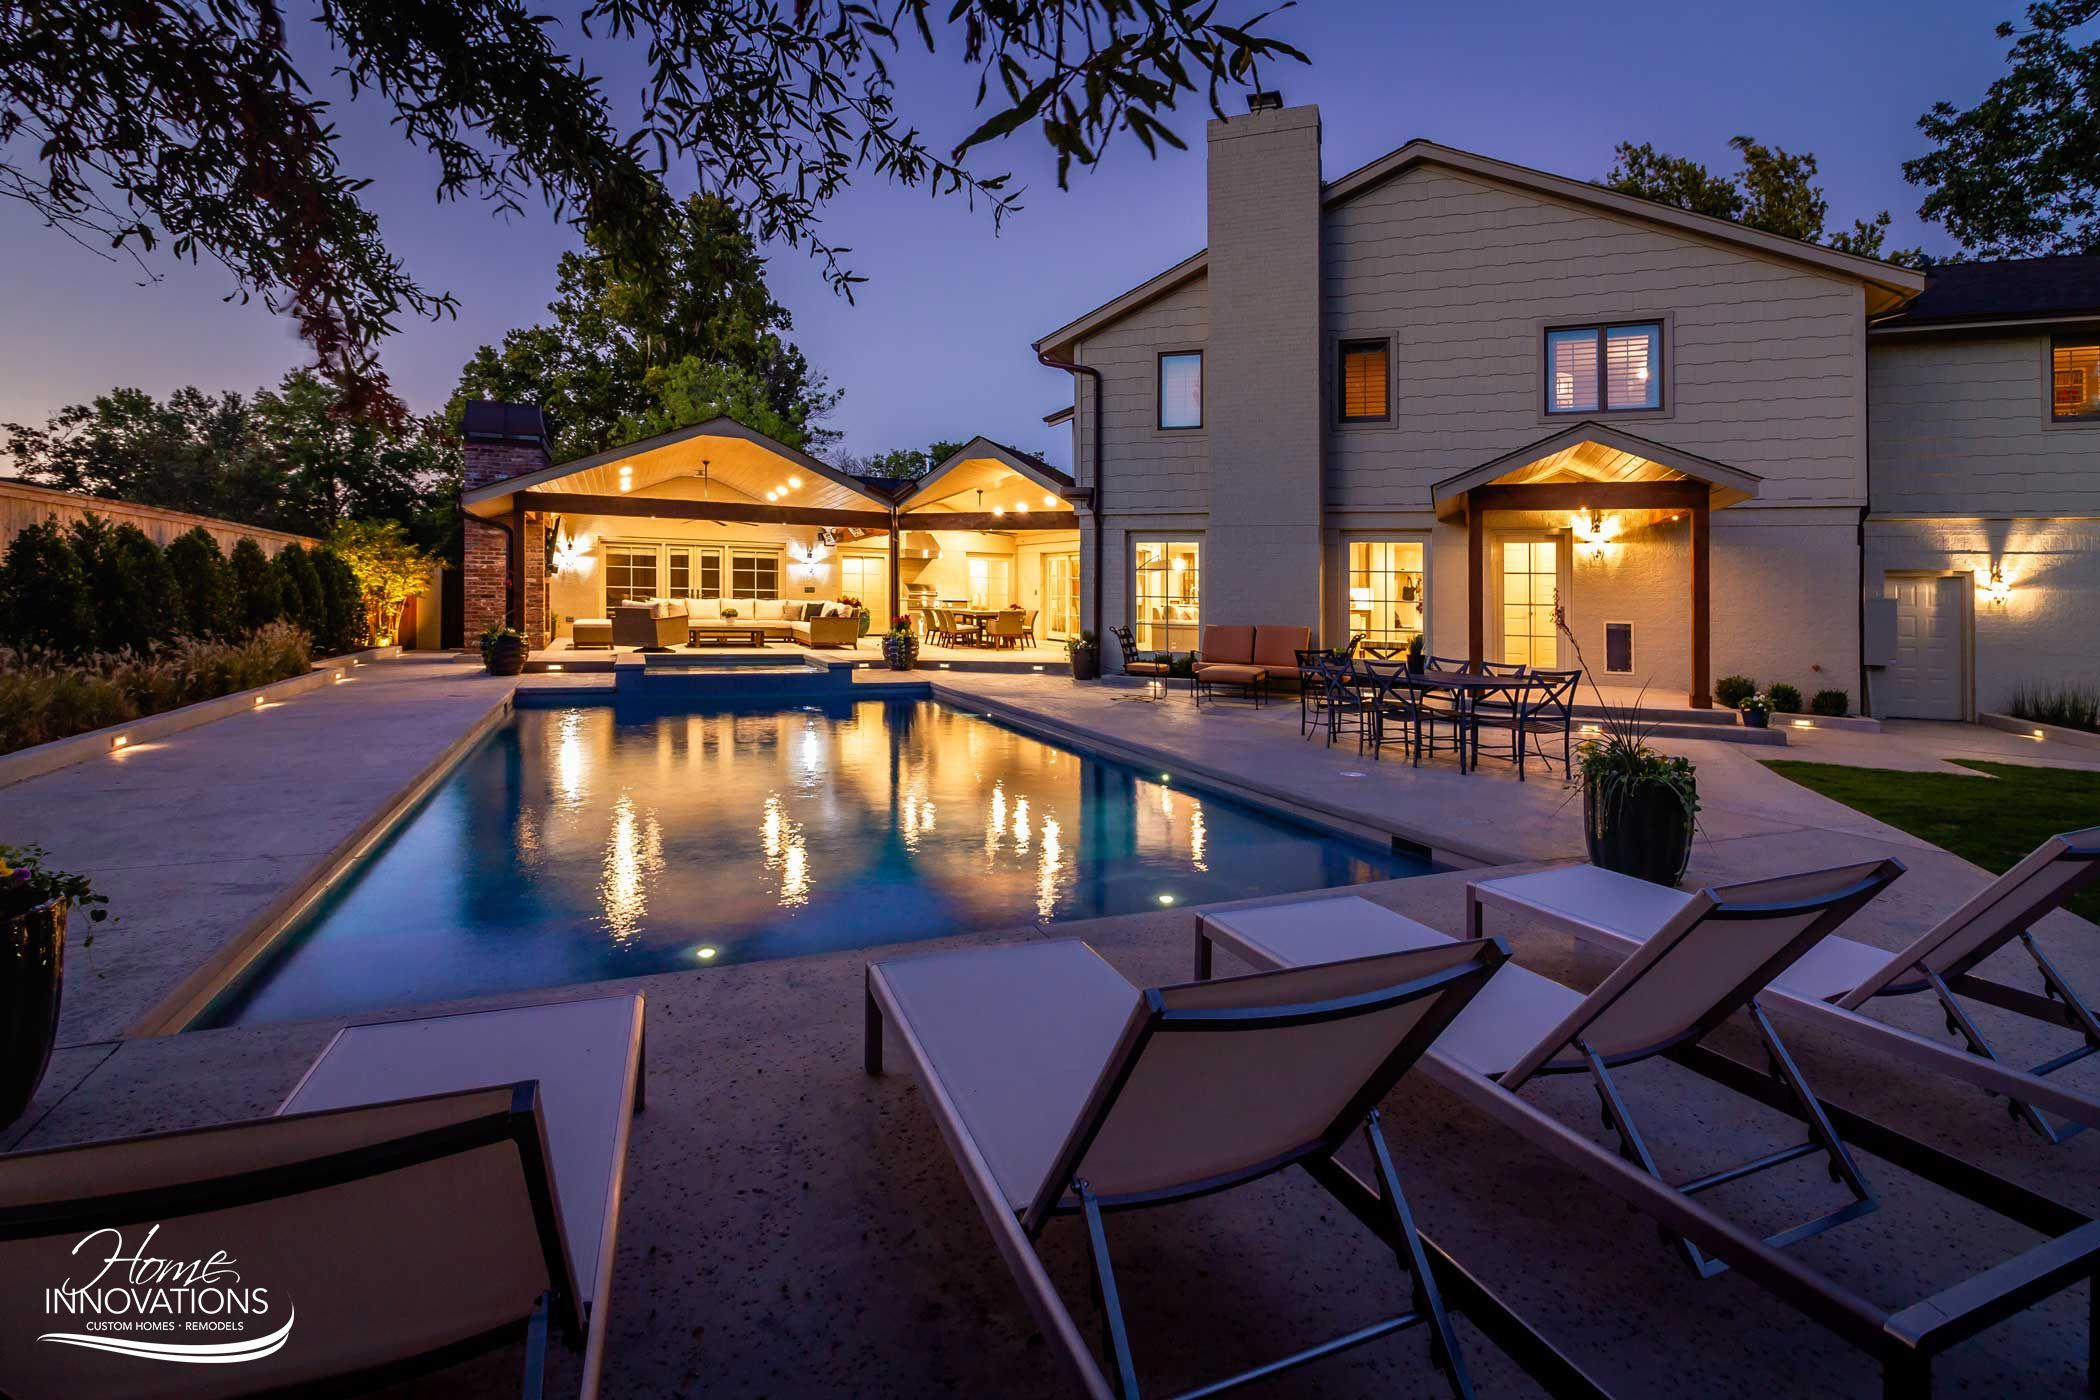 Swimming Pool Hot Tub Outdoor Kitchen Living Area With Fireplace Outdoor Remodel Hot Tub Outdoor Waterfront Property